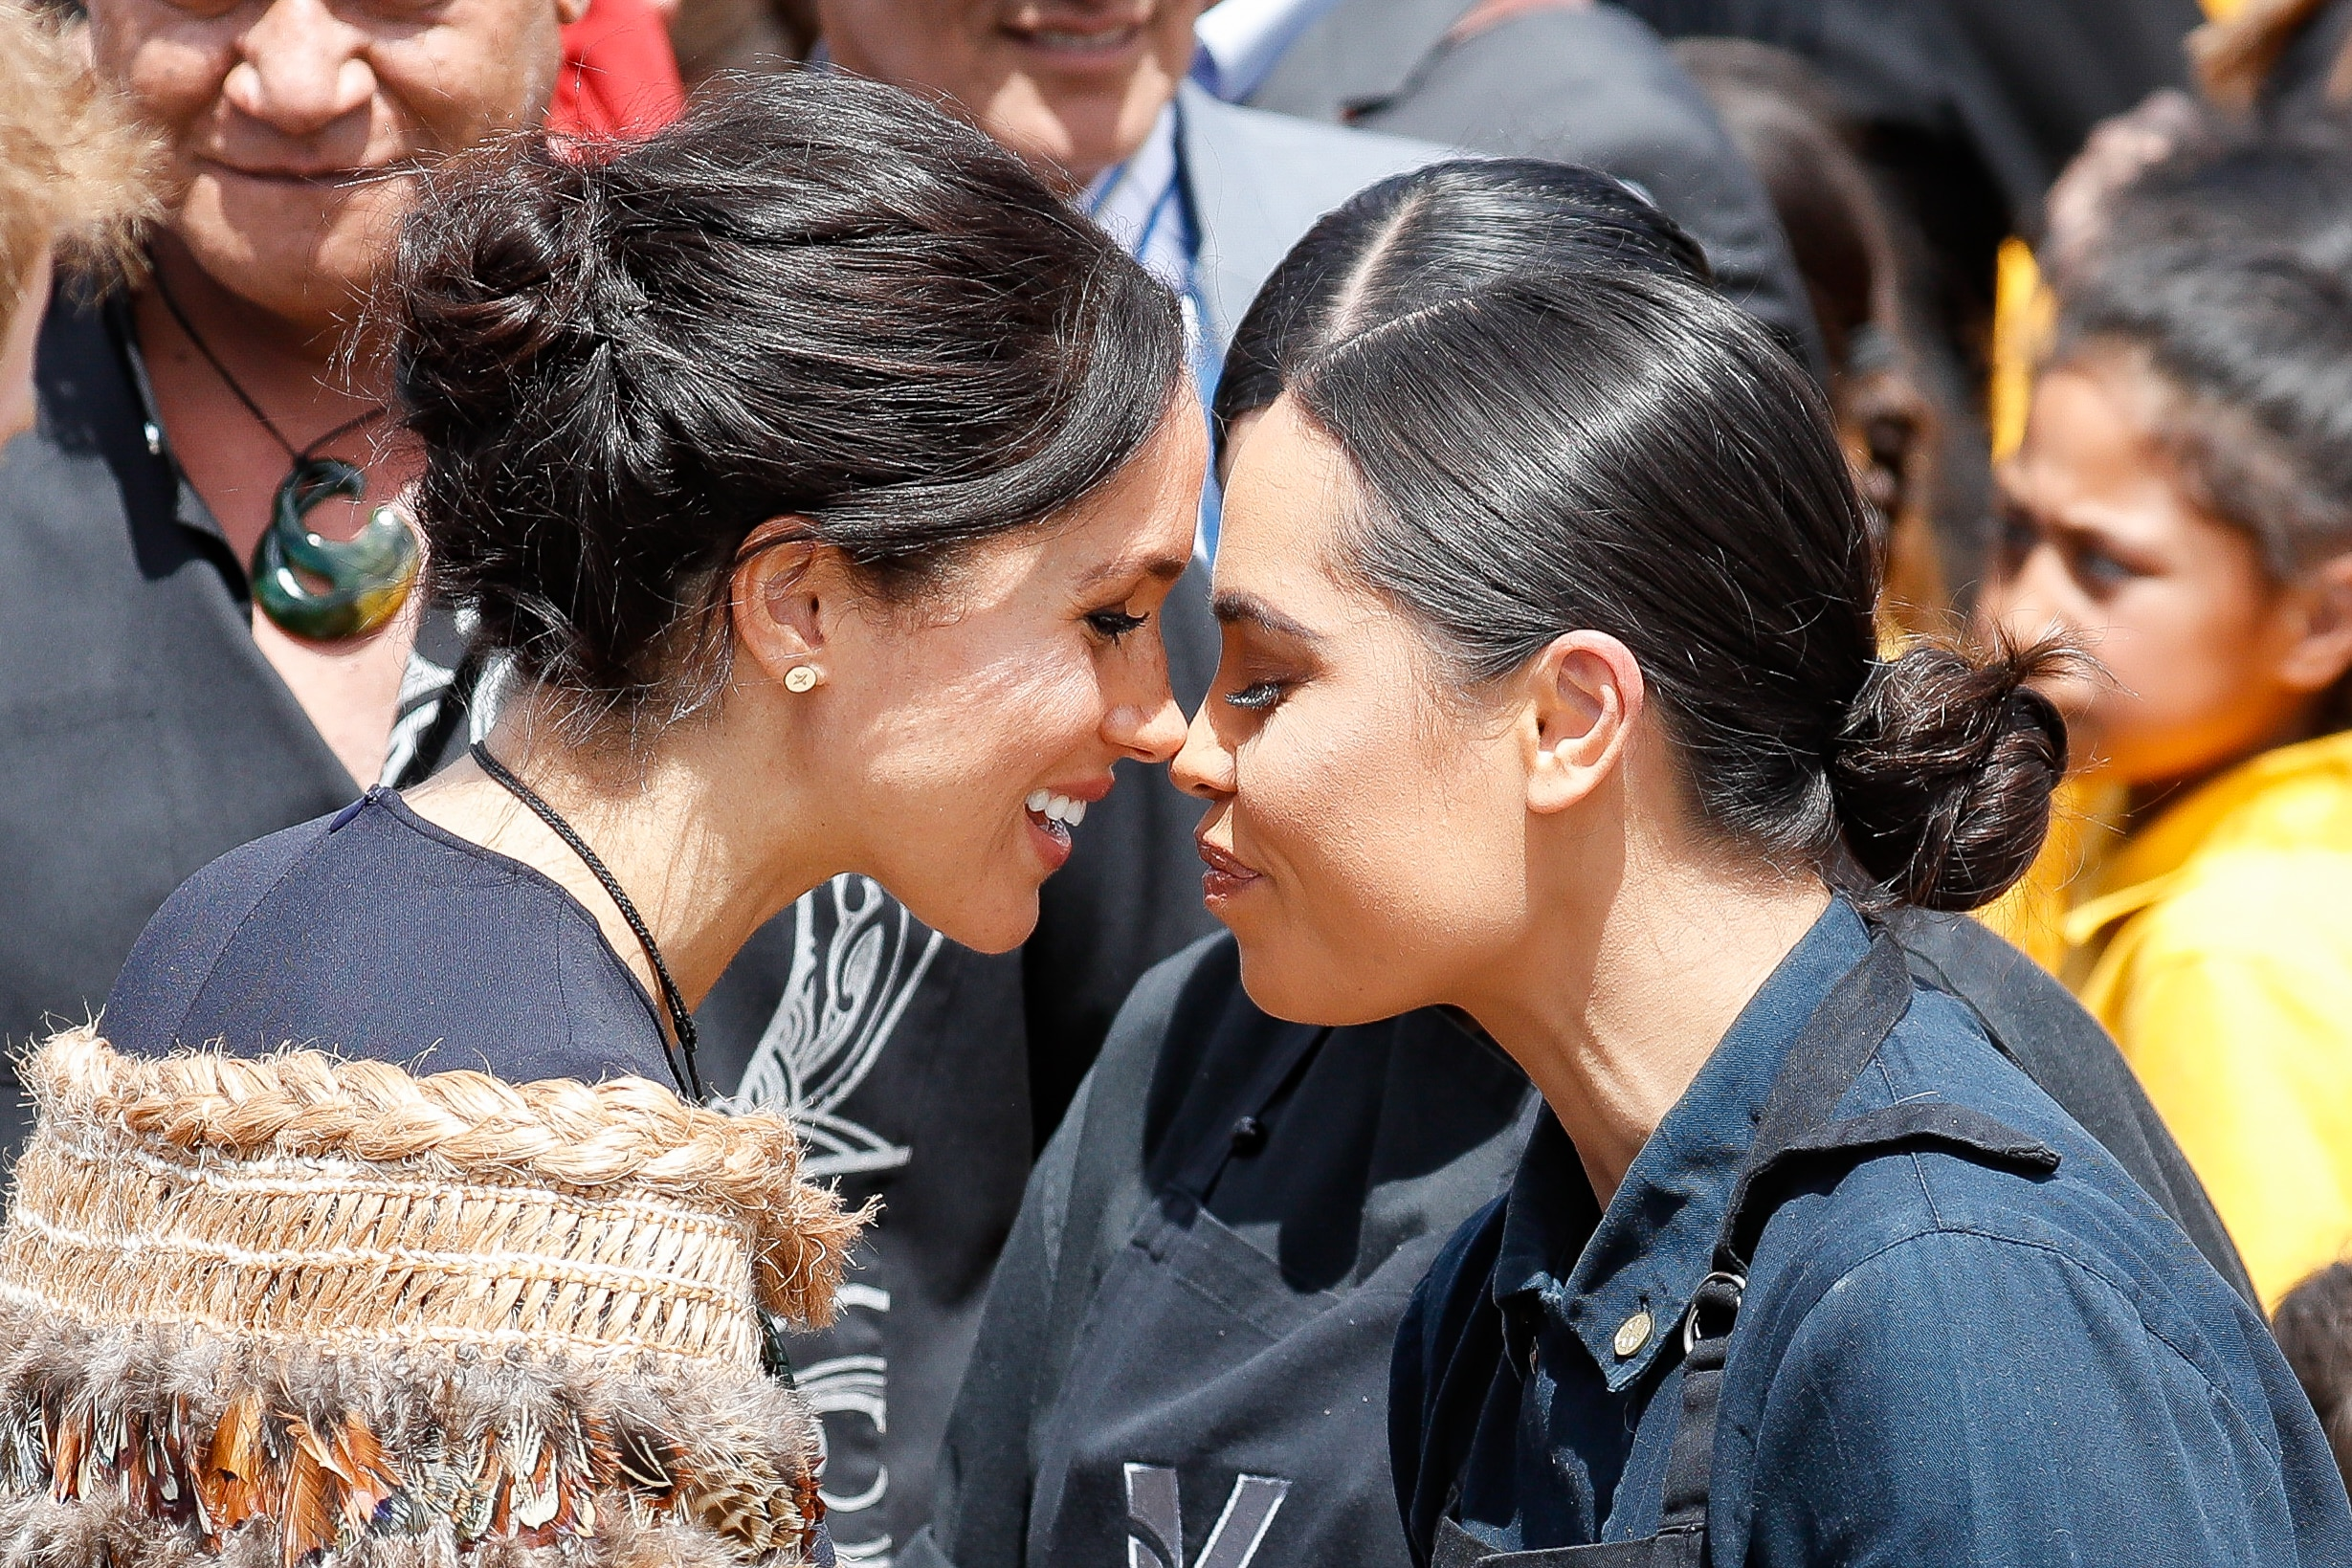 Meghan, Duchess of Sussex greets locals during the 2018 visit to New Zealand.